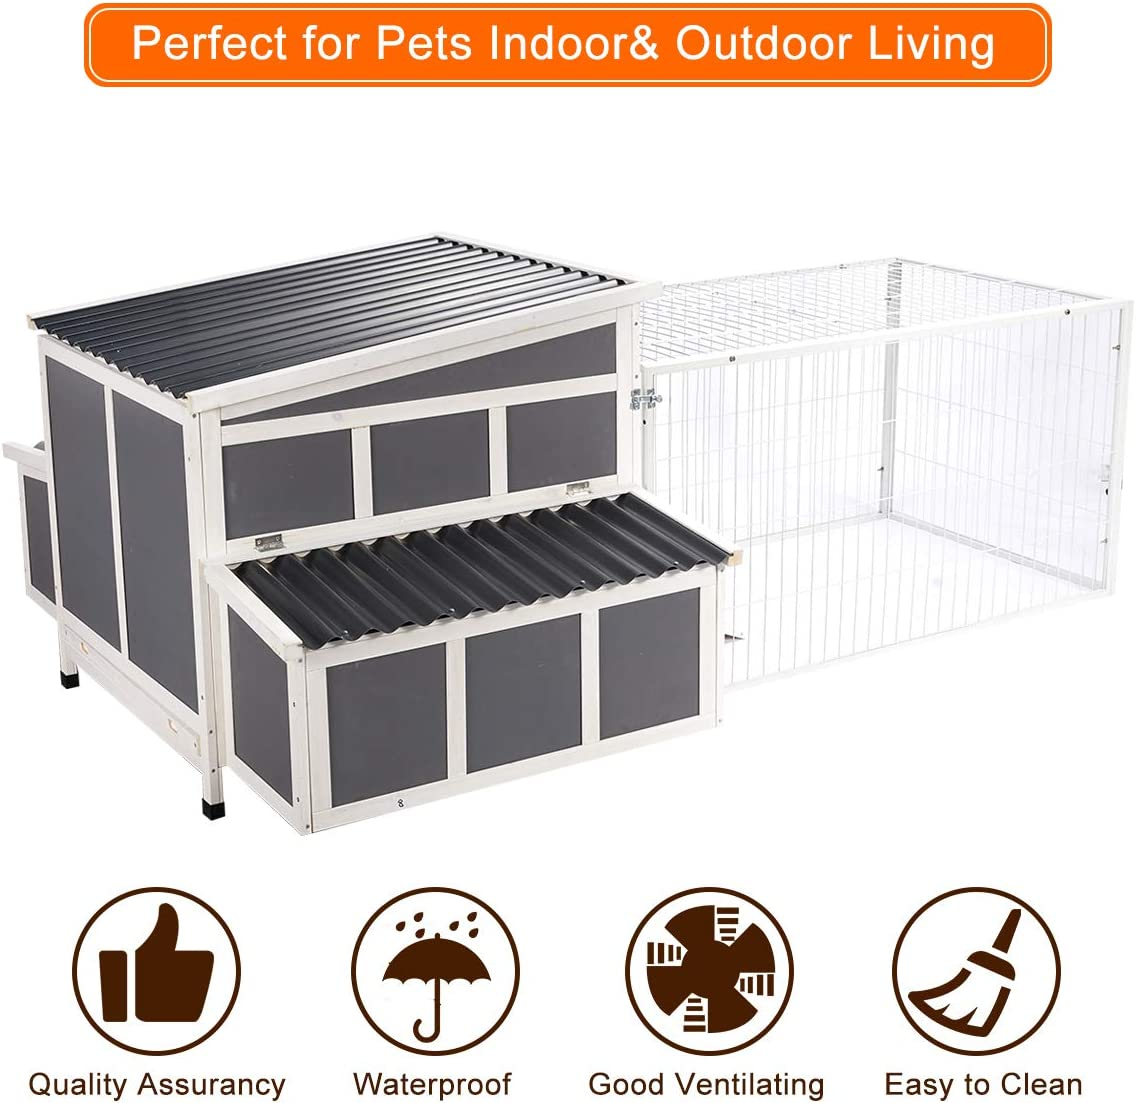 Esright 88 Large Chicken Coop Wooden Chicken Cage Hen House Outdoor Yard Poultry Pet Hutch for Small Animal Coops with Nesting Box and Chicken Run for 8-10 Chickens